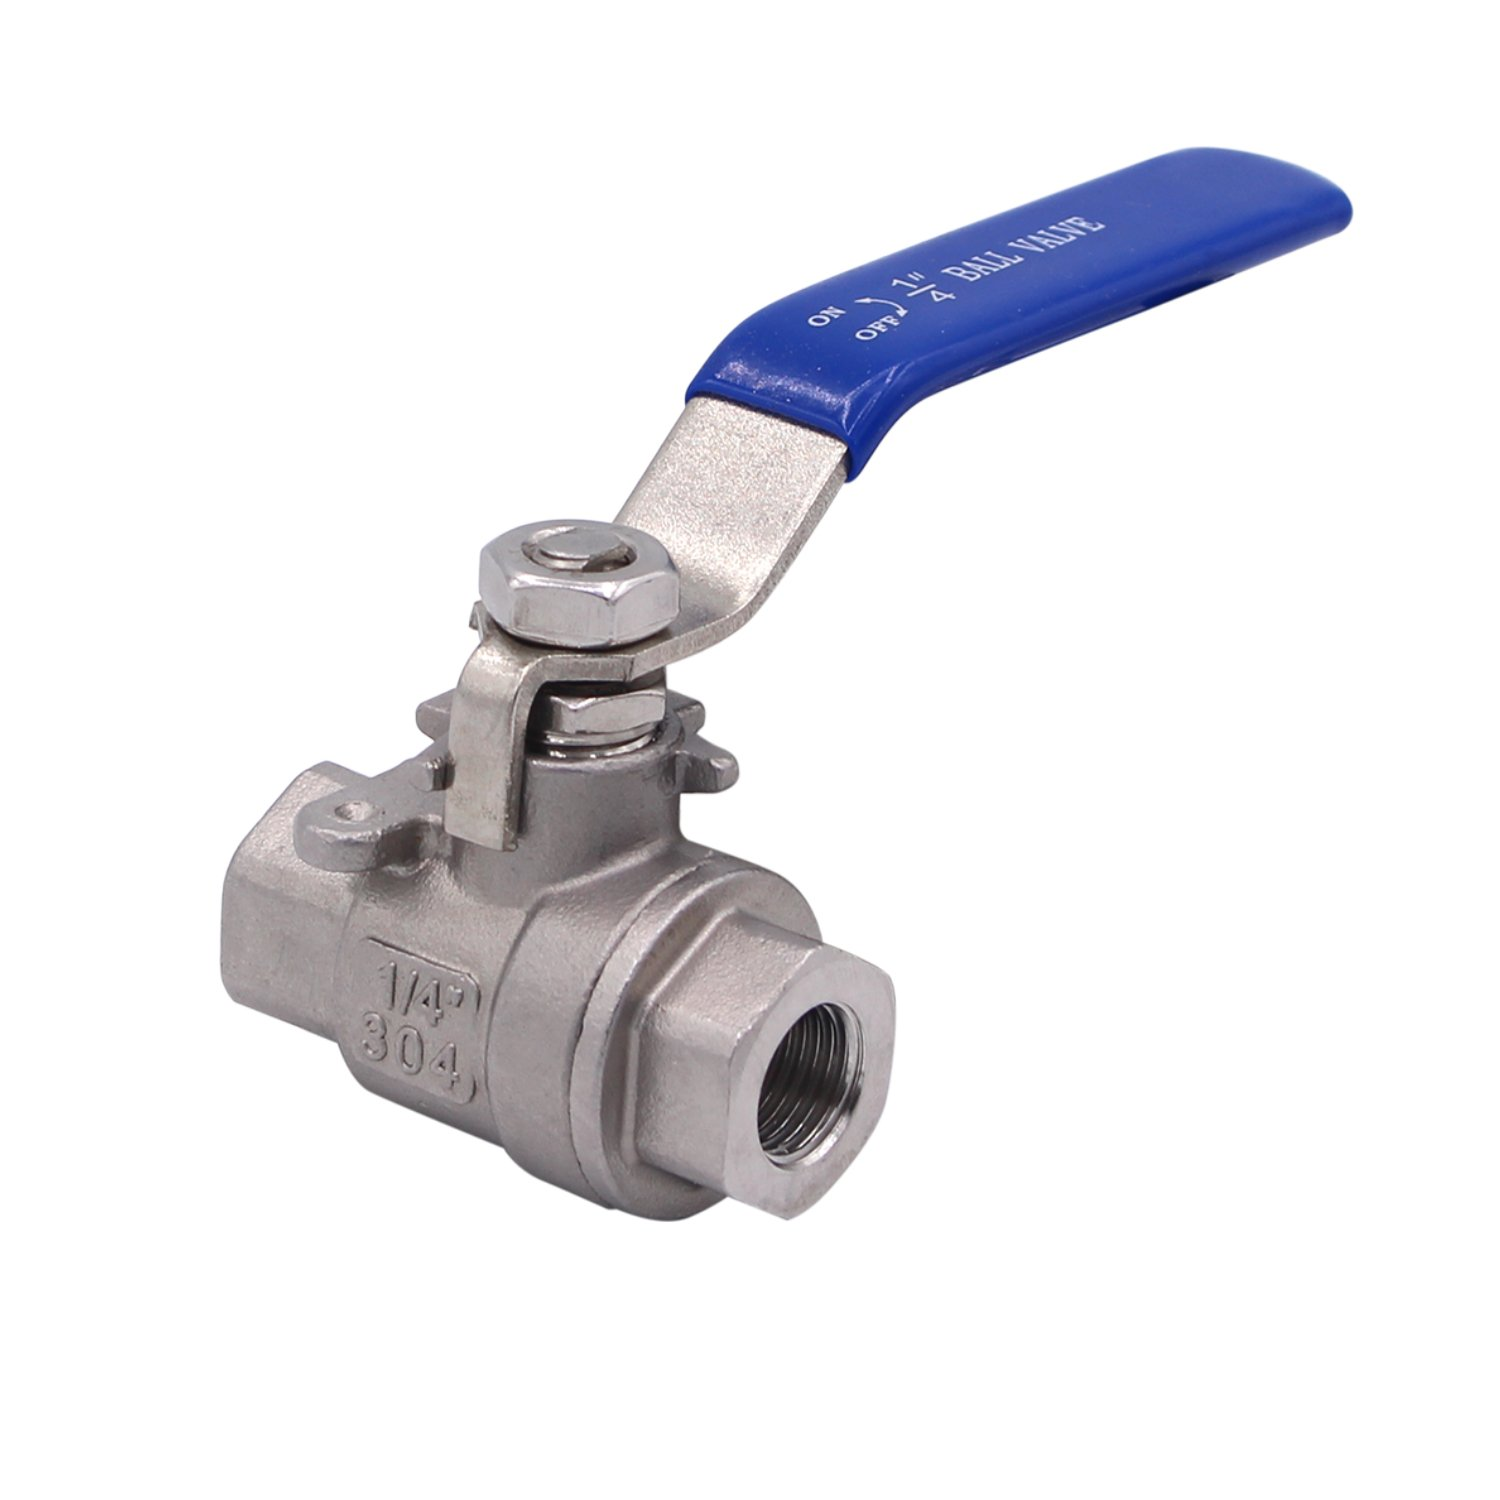 Dernord Full Port Ball Valve Stainless Steel 304 Heavy Duty for Water, Oil, and Gas with Blue Locking Handles (1/4'' NPT)